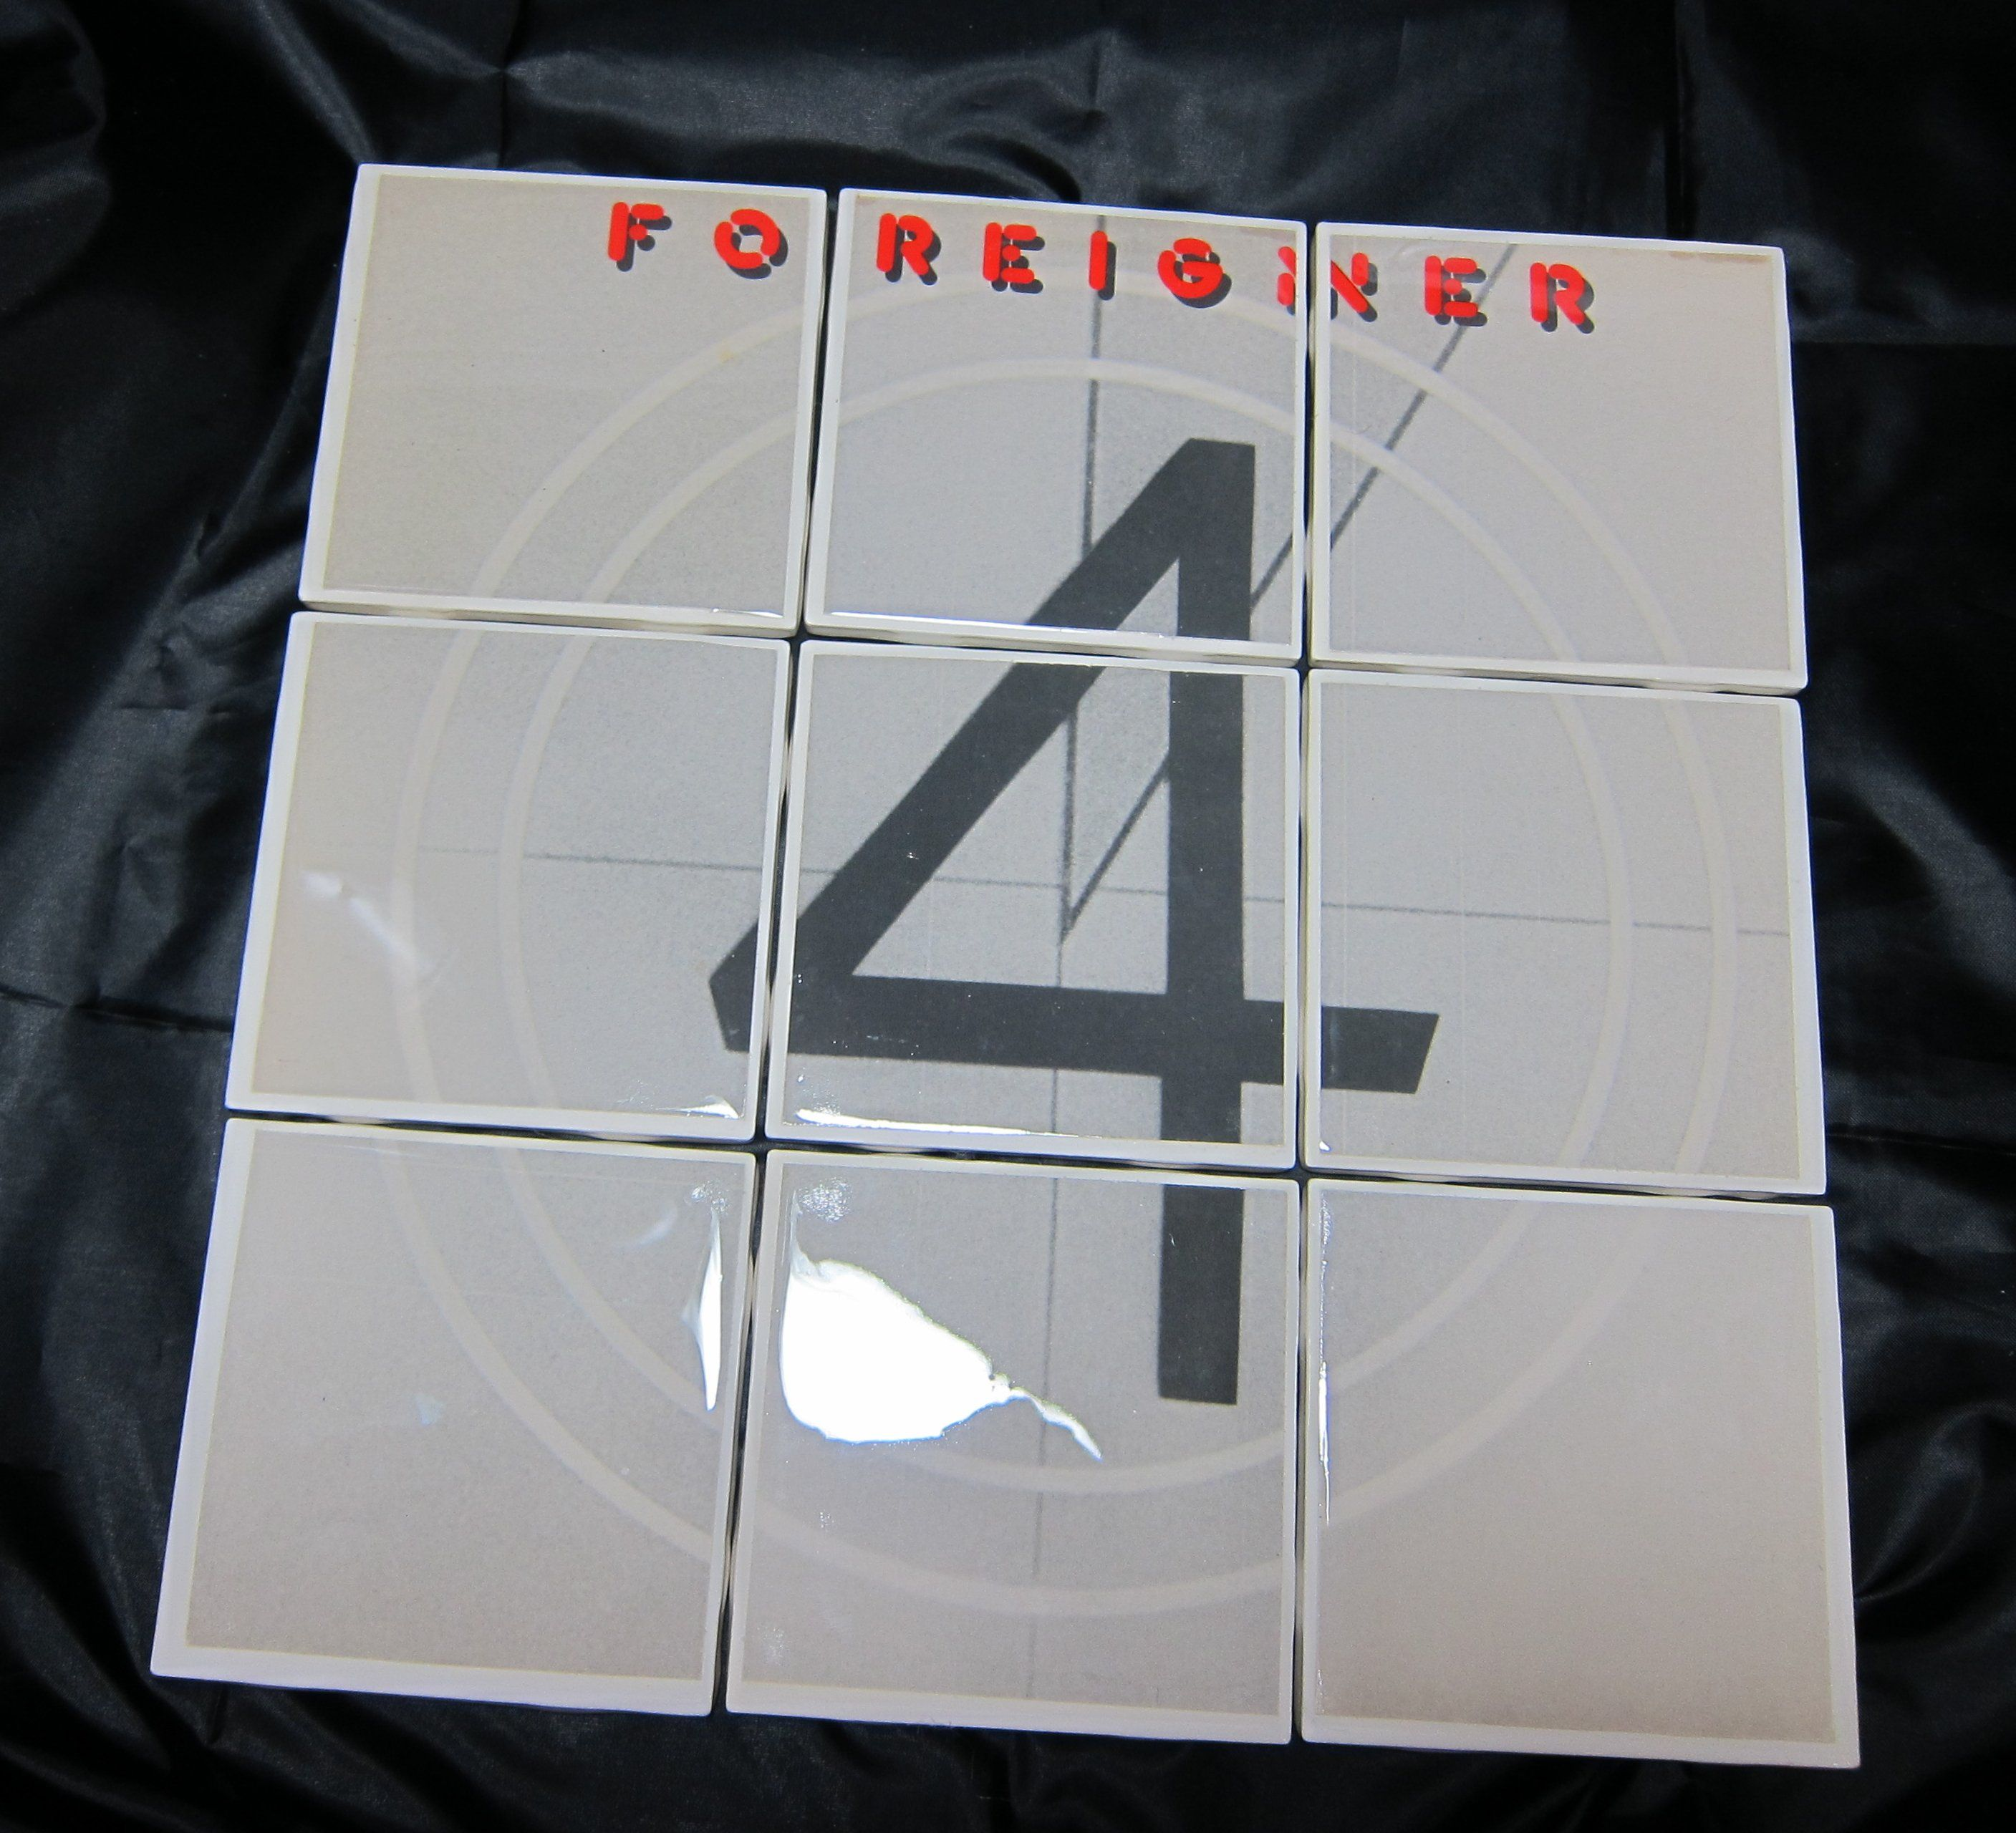 Foreigner Real Album Sleeve Coasters Tile Set Recycled Vinyl Record Album Sleeves Used Vinyl Records Vinyl Records